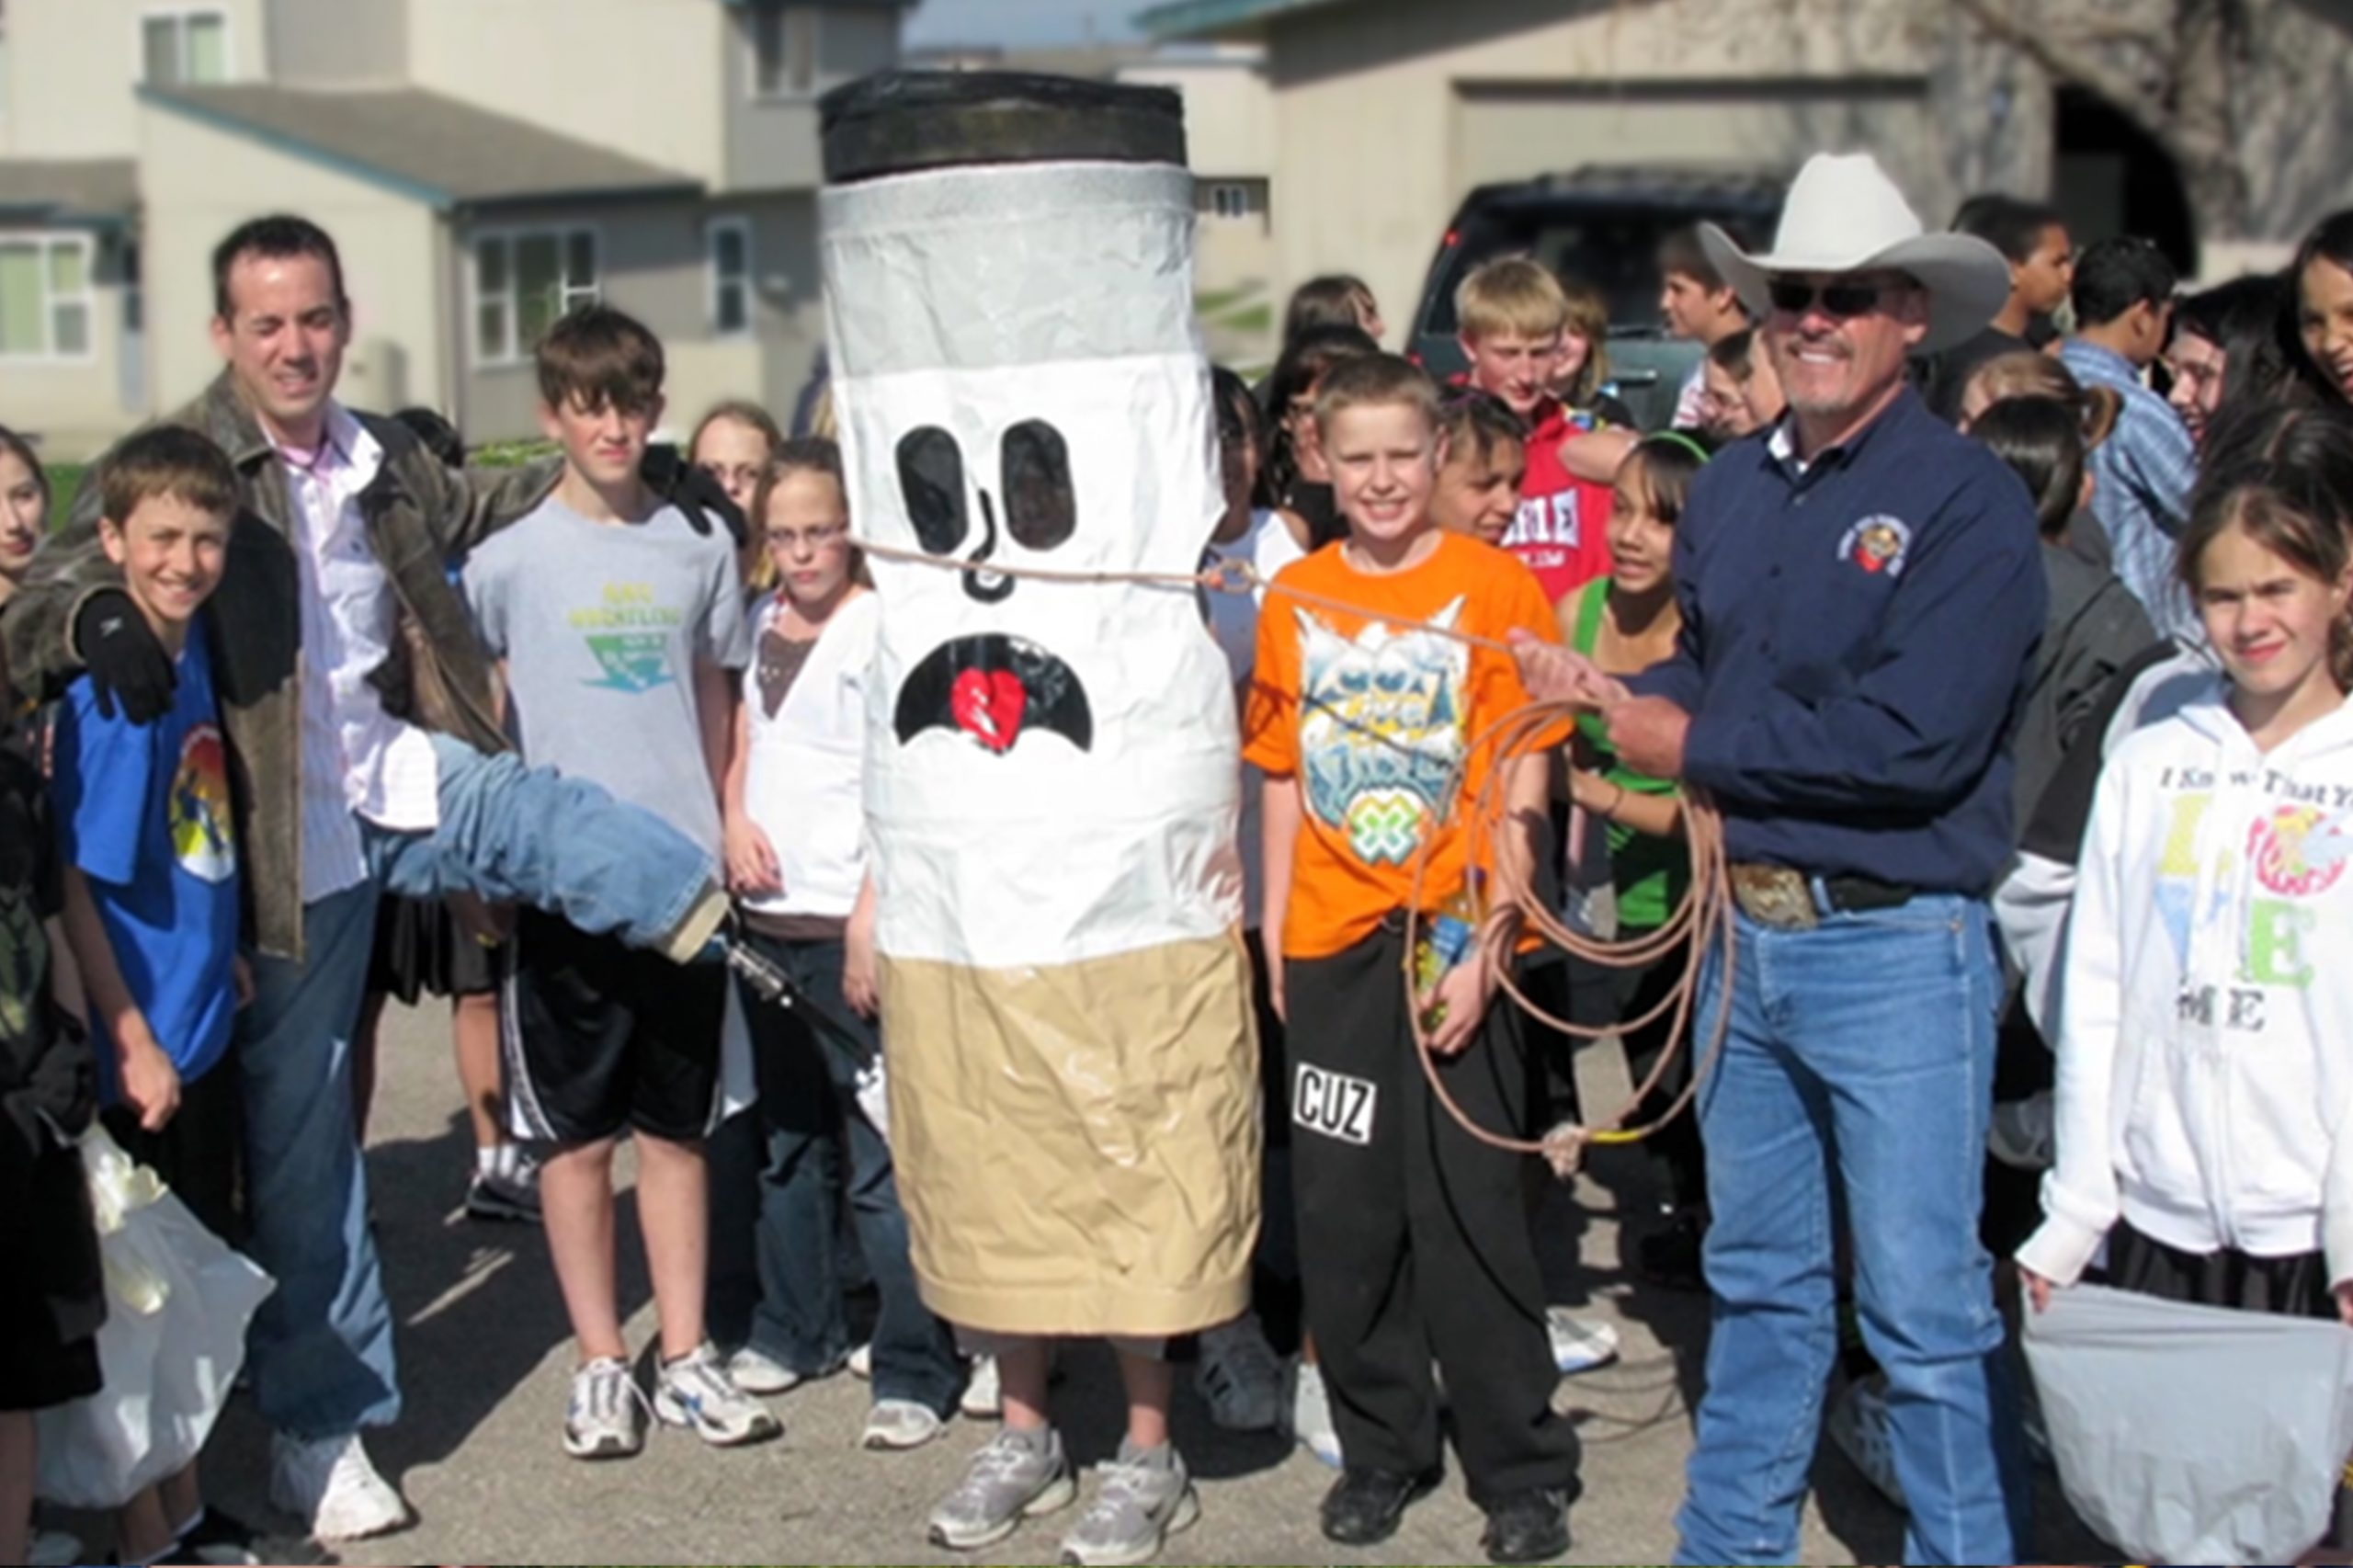 Cowboy Ted meeting with children to teach them about saying no to smoking.